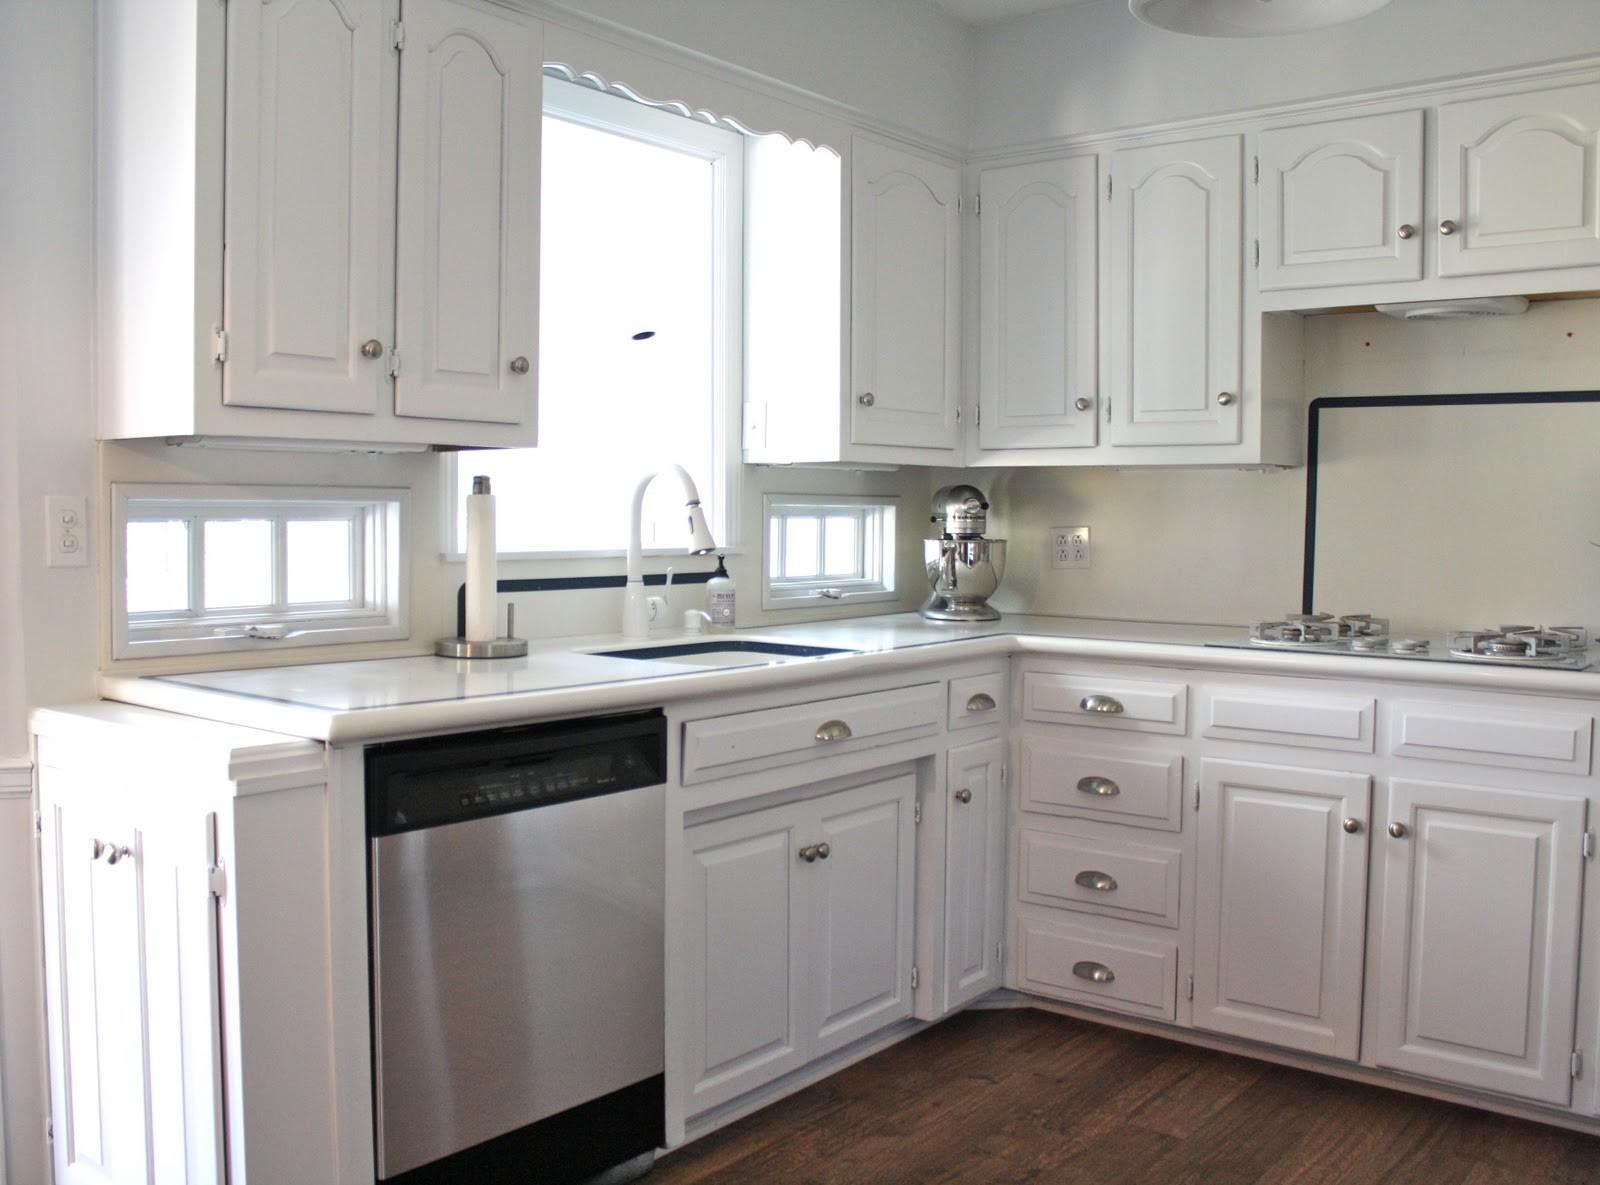 Diy Stainless Steel Appliances